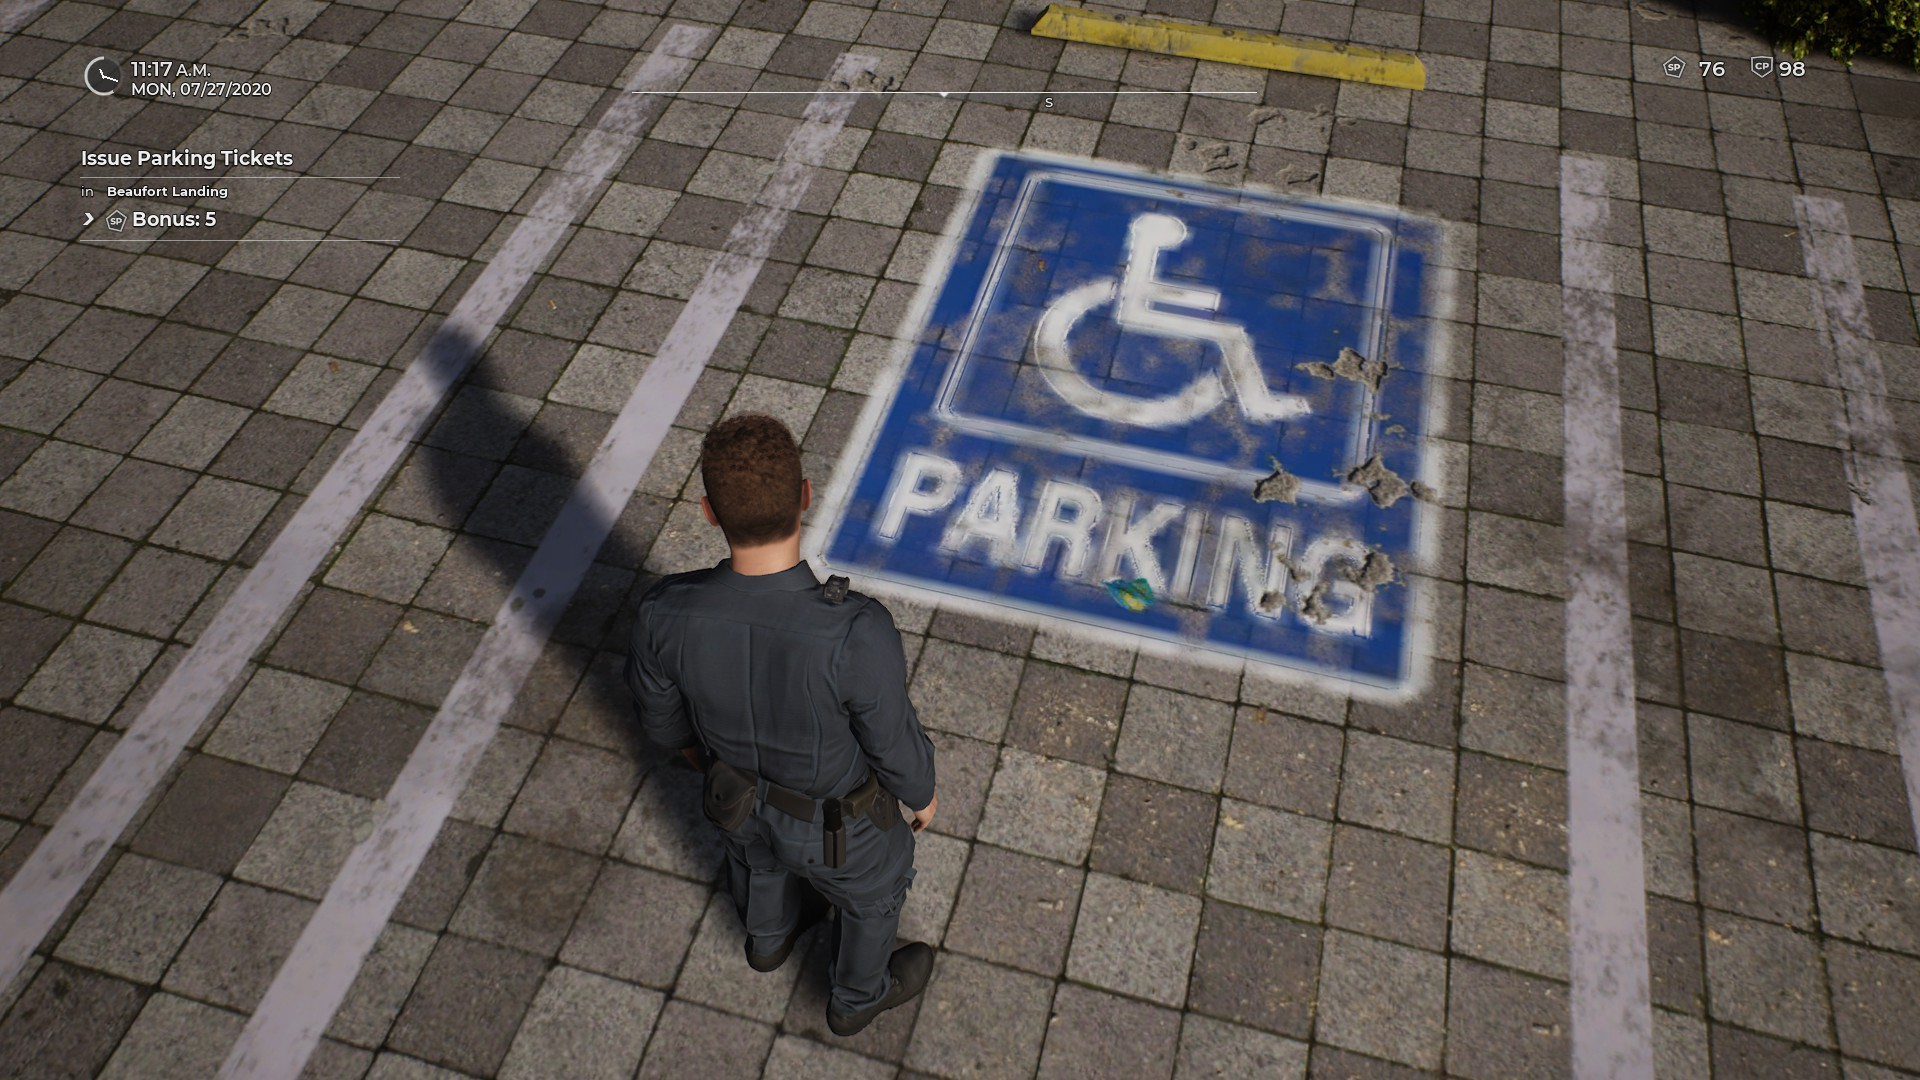 An in-depth guide to handicap parking image 2